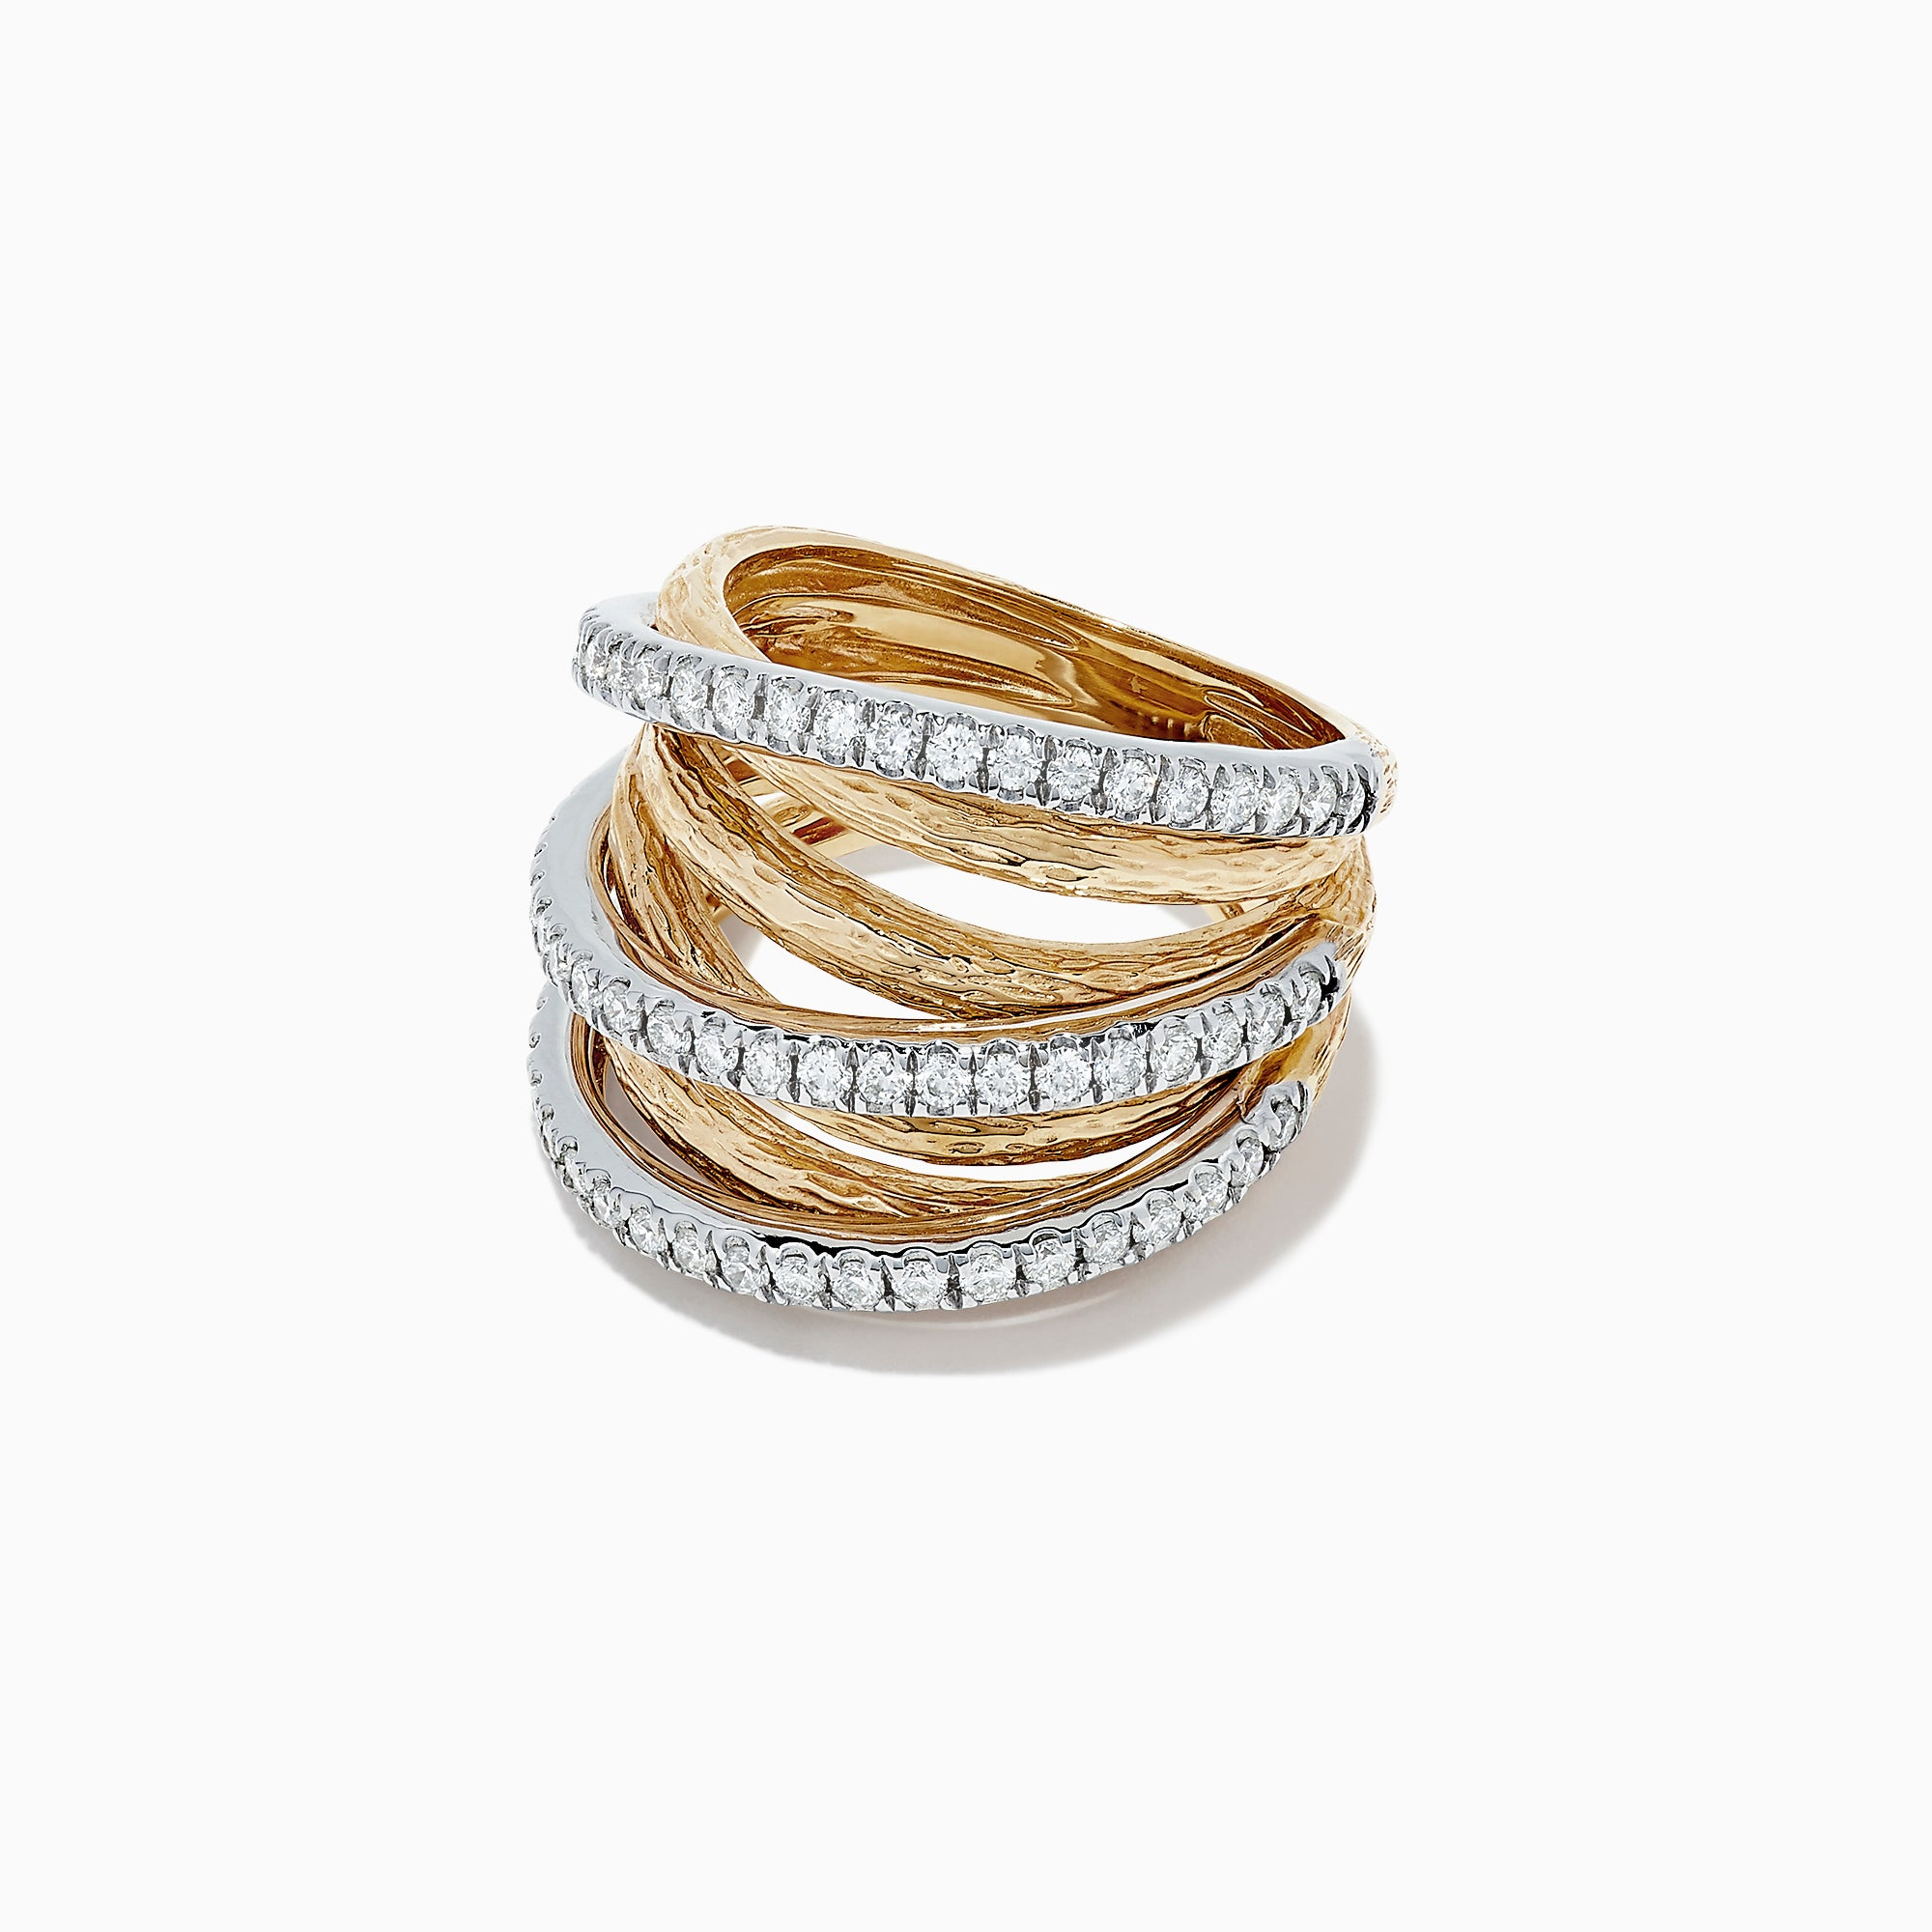 Effy Duo 14K Two Tone Gold Diamond Crossover Ring, 0.97 TCW